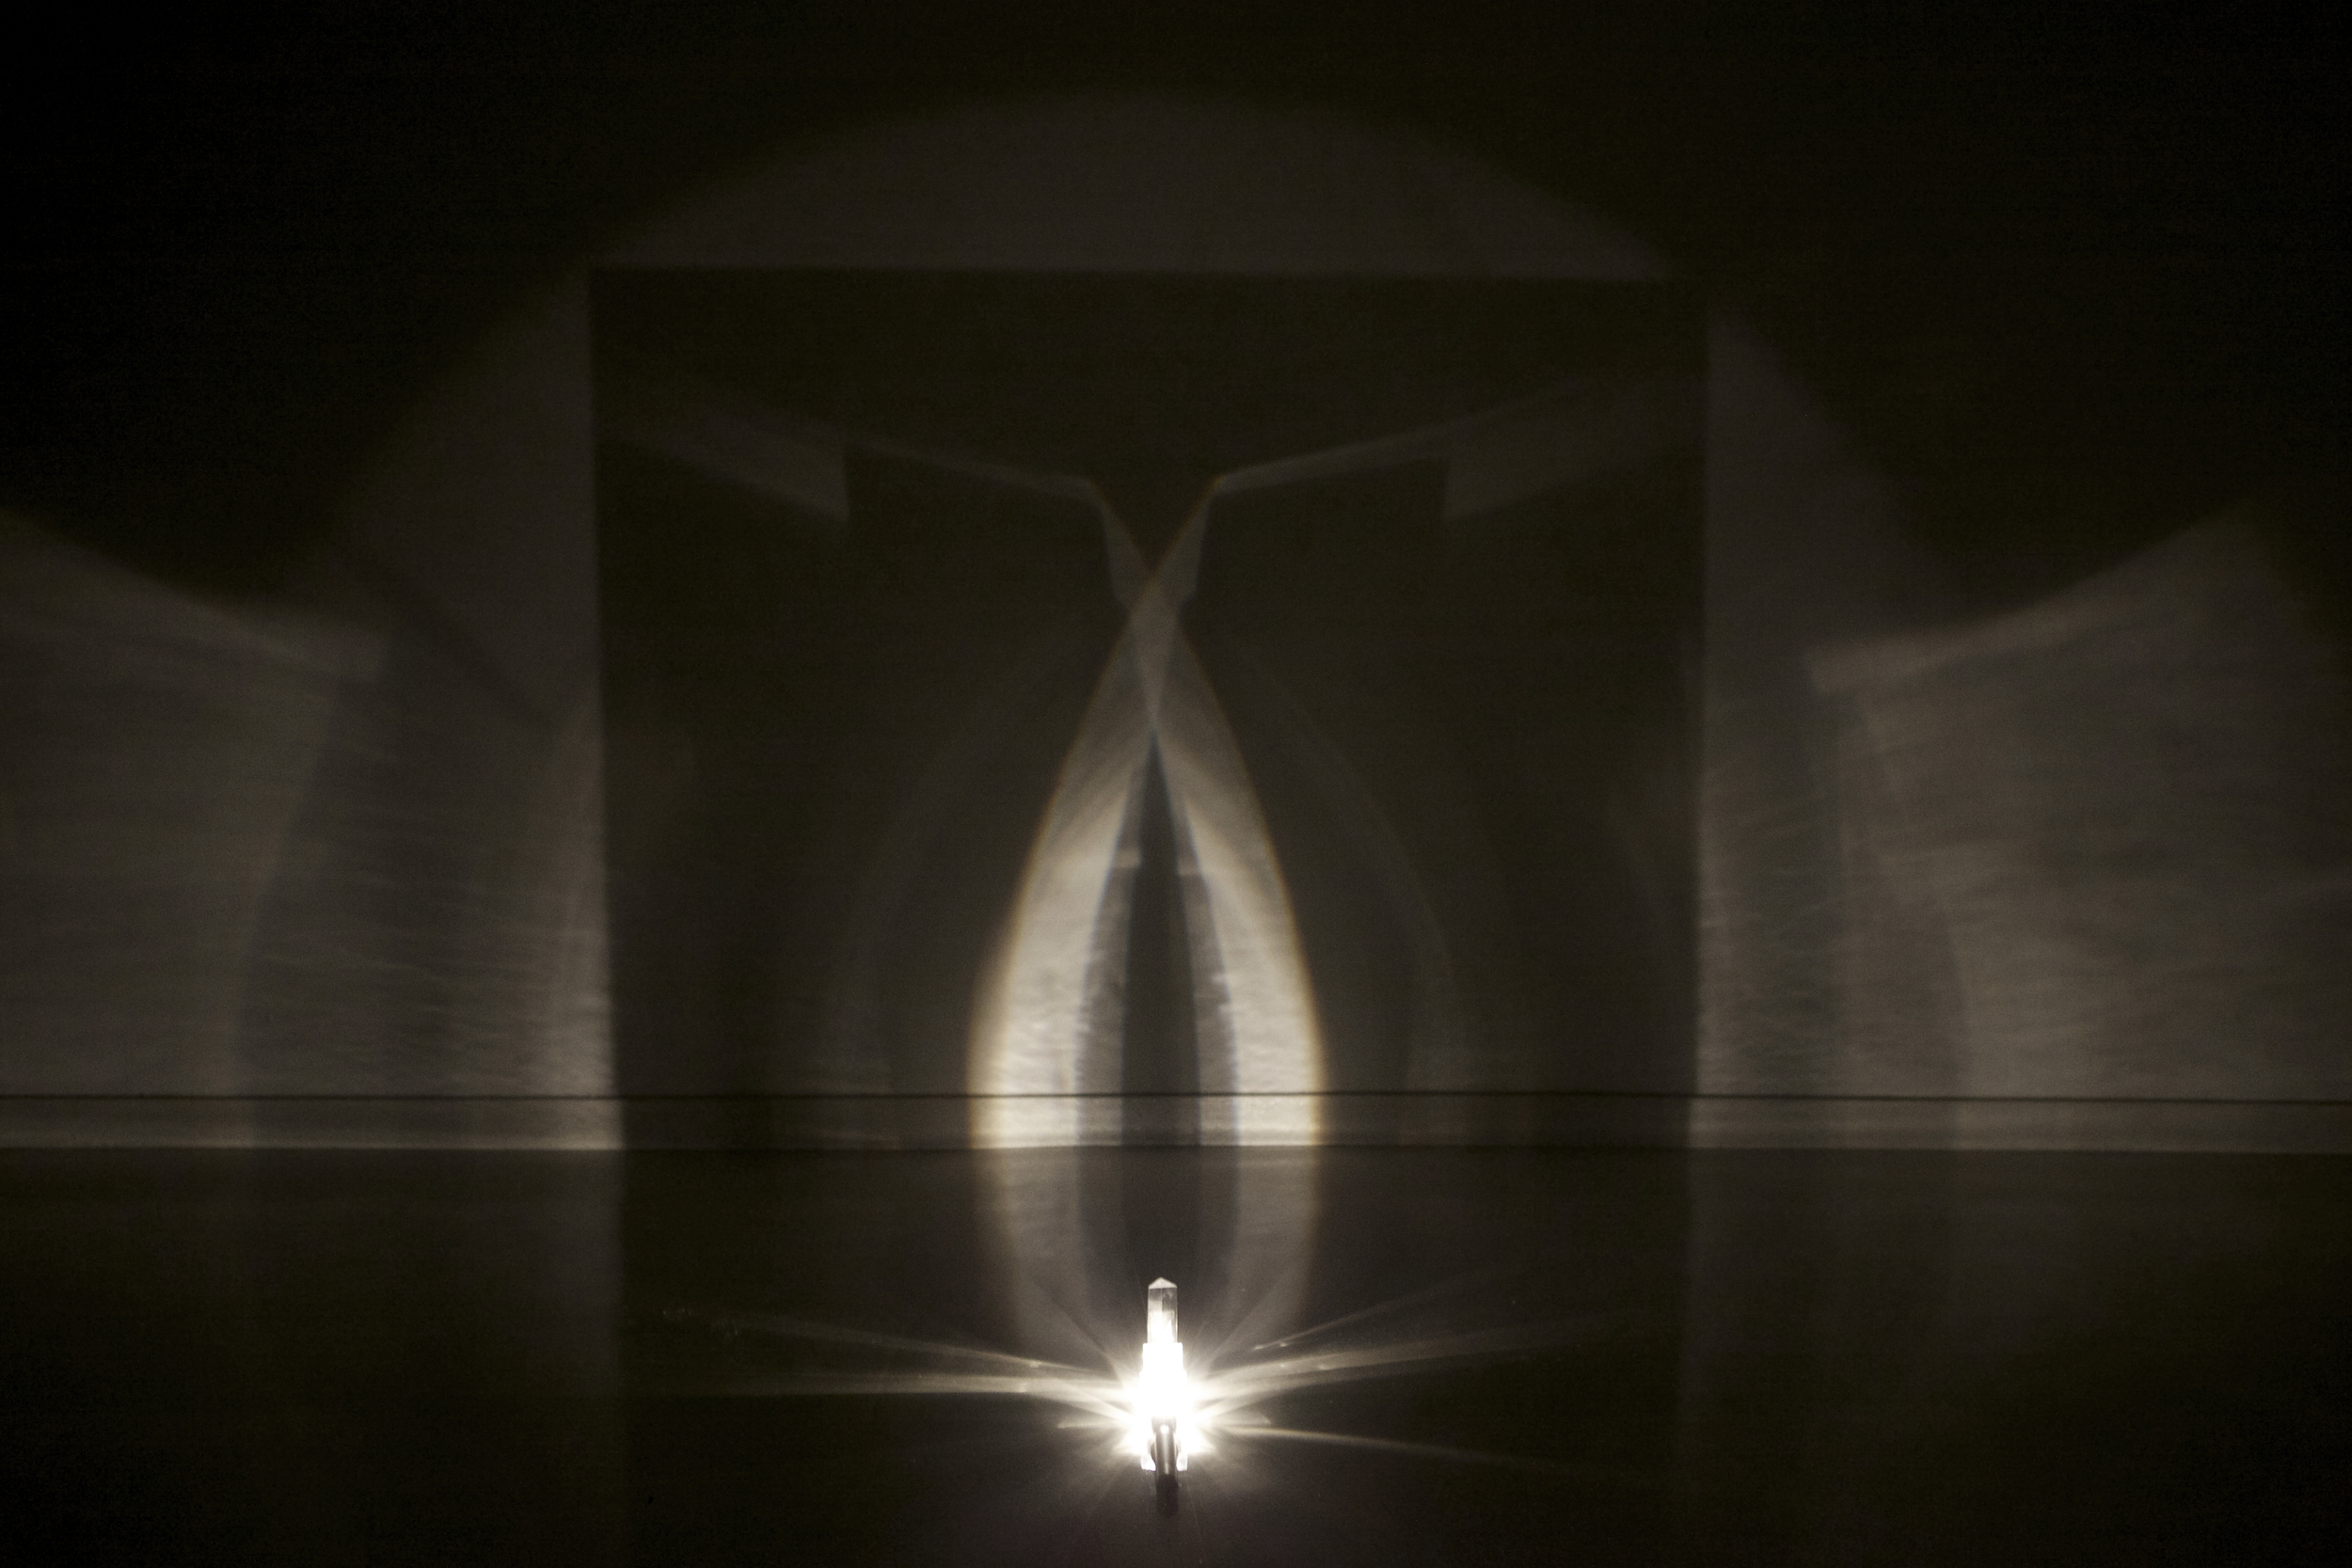 When One Travels Past the Speed of Light, the Great Iris Appears, 2014